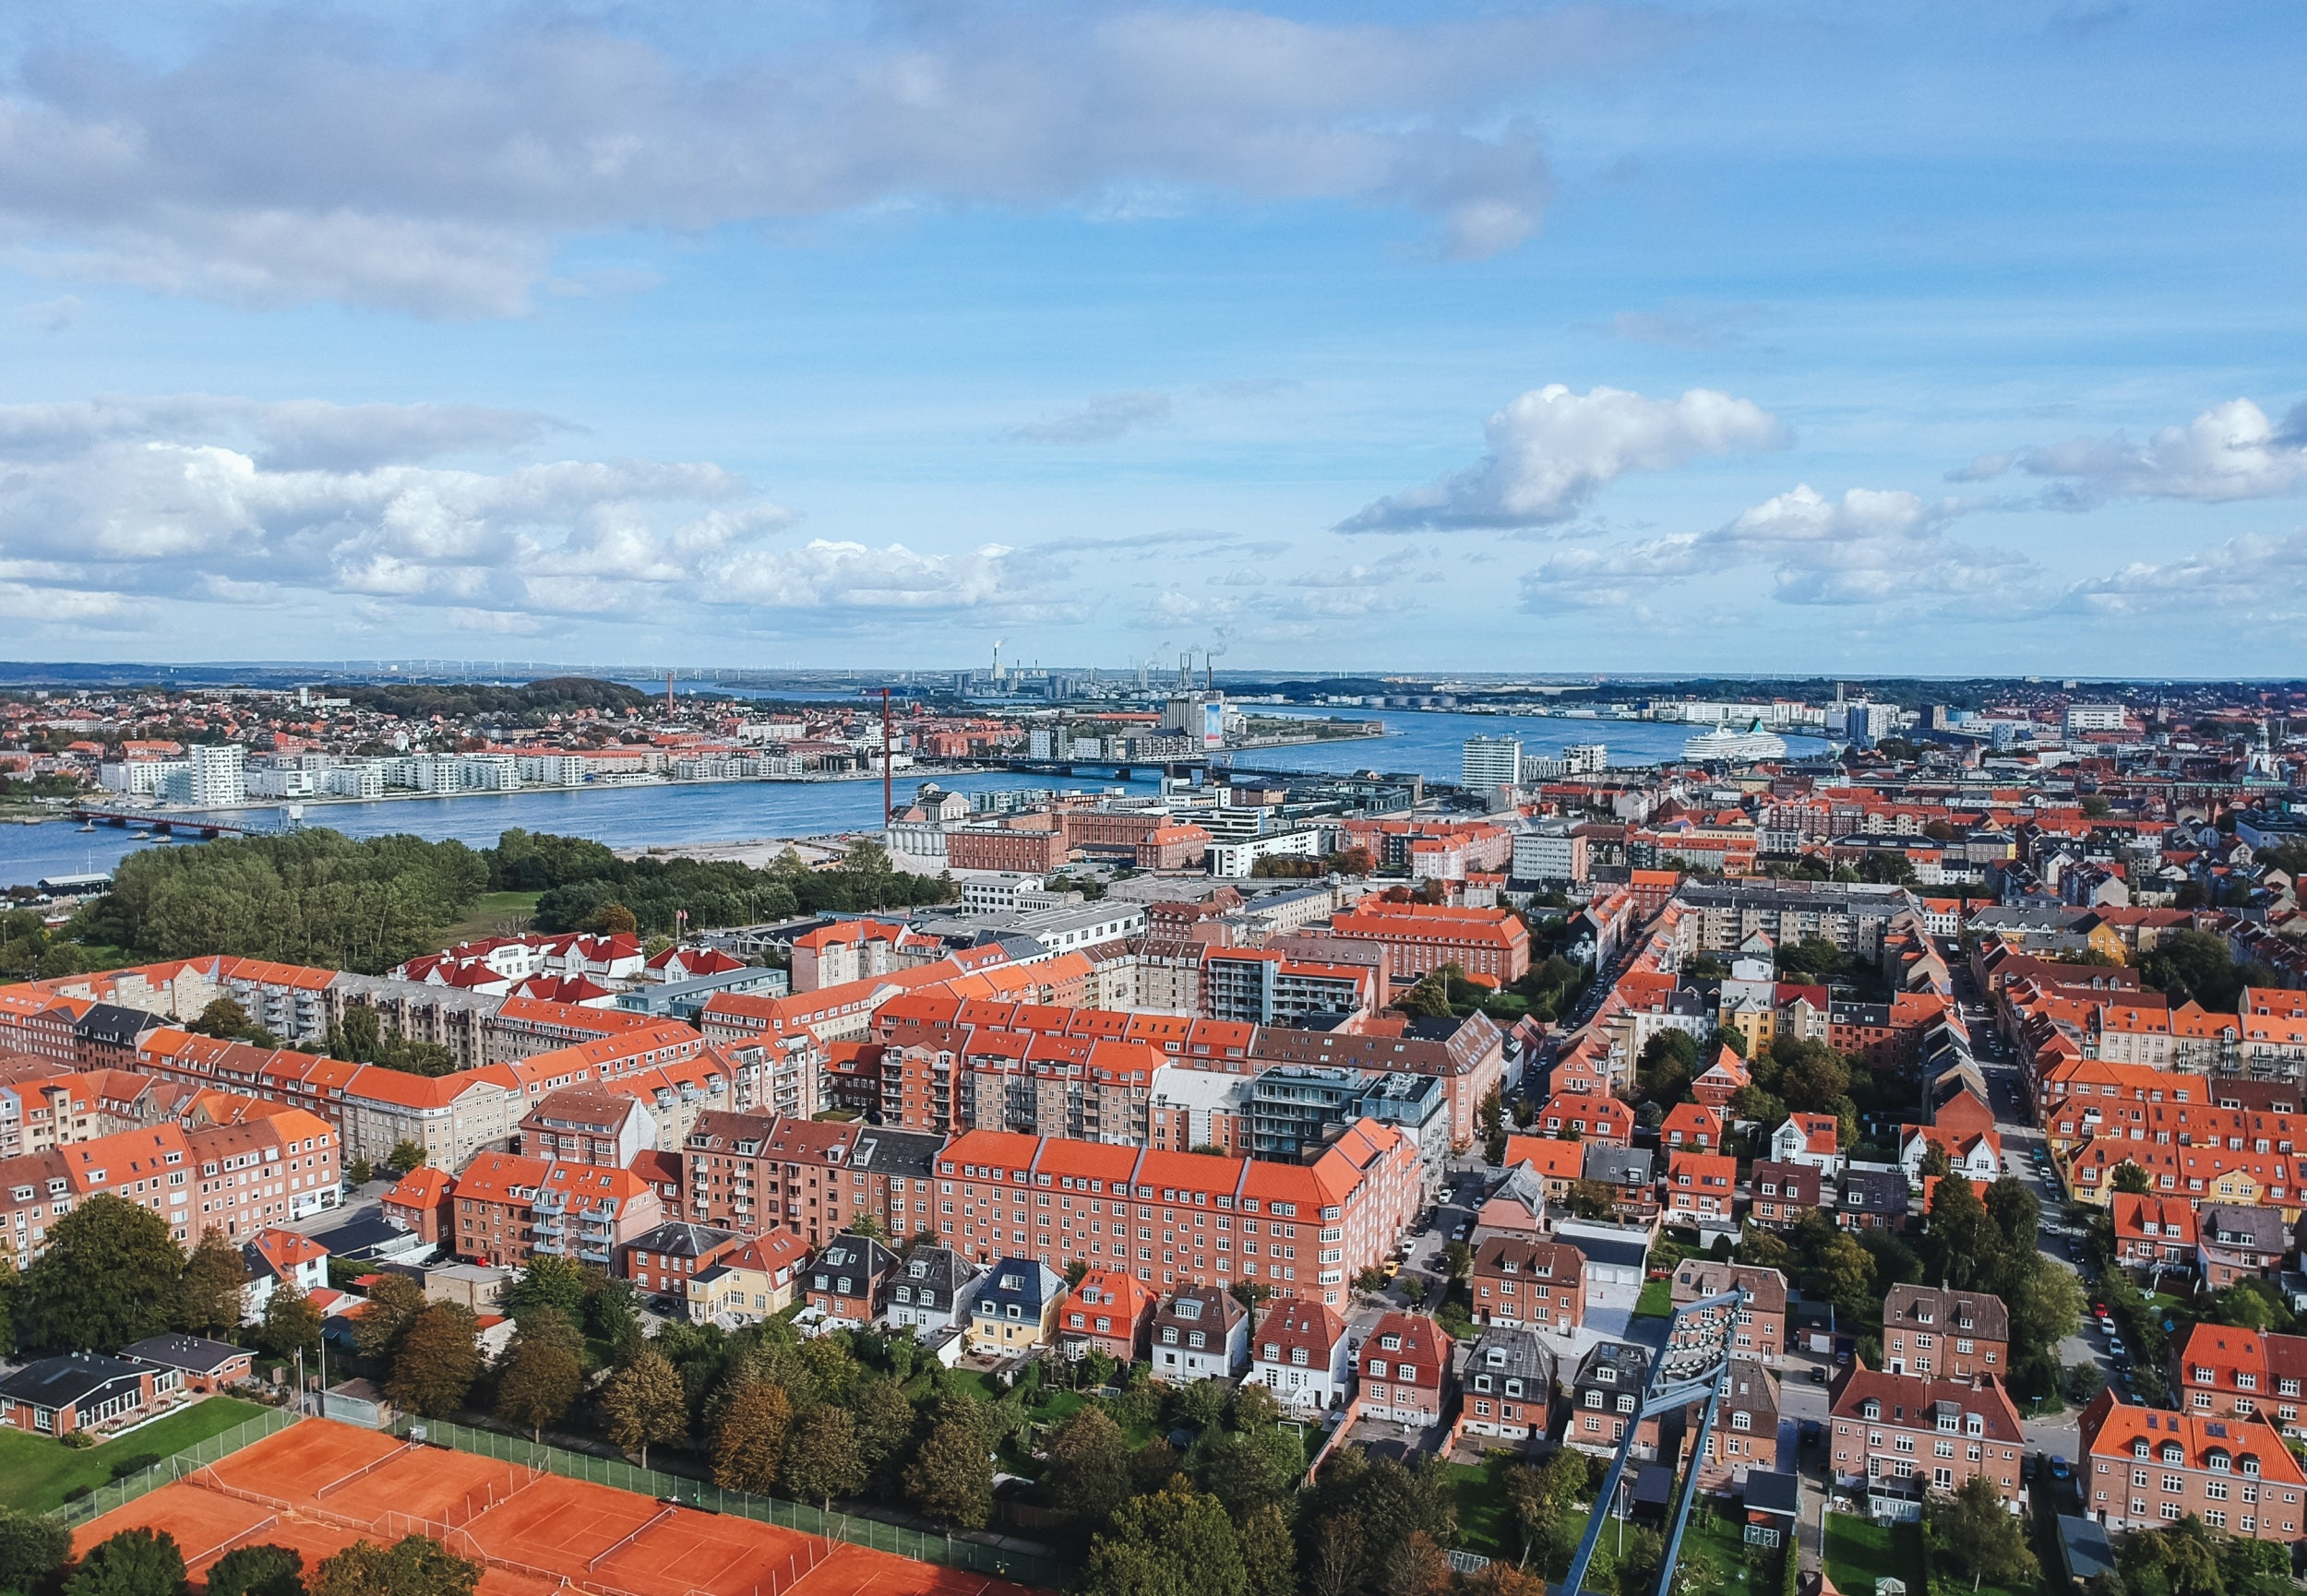 Aalborg, Denmark: Architecture revitalises the waterfront